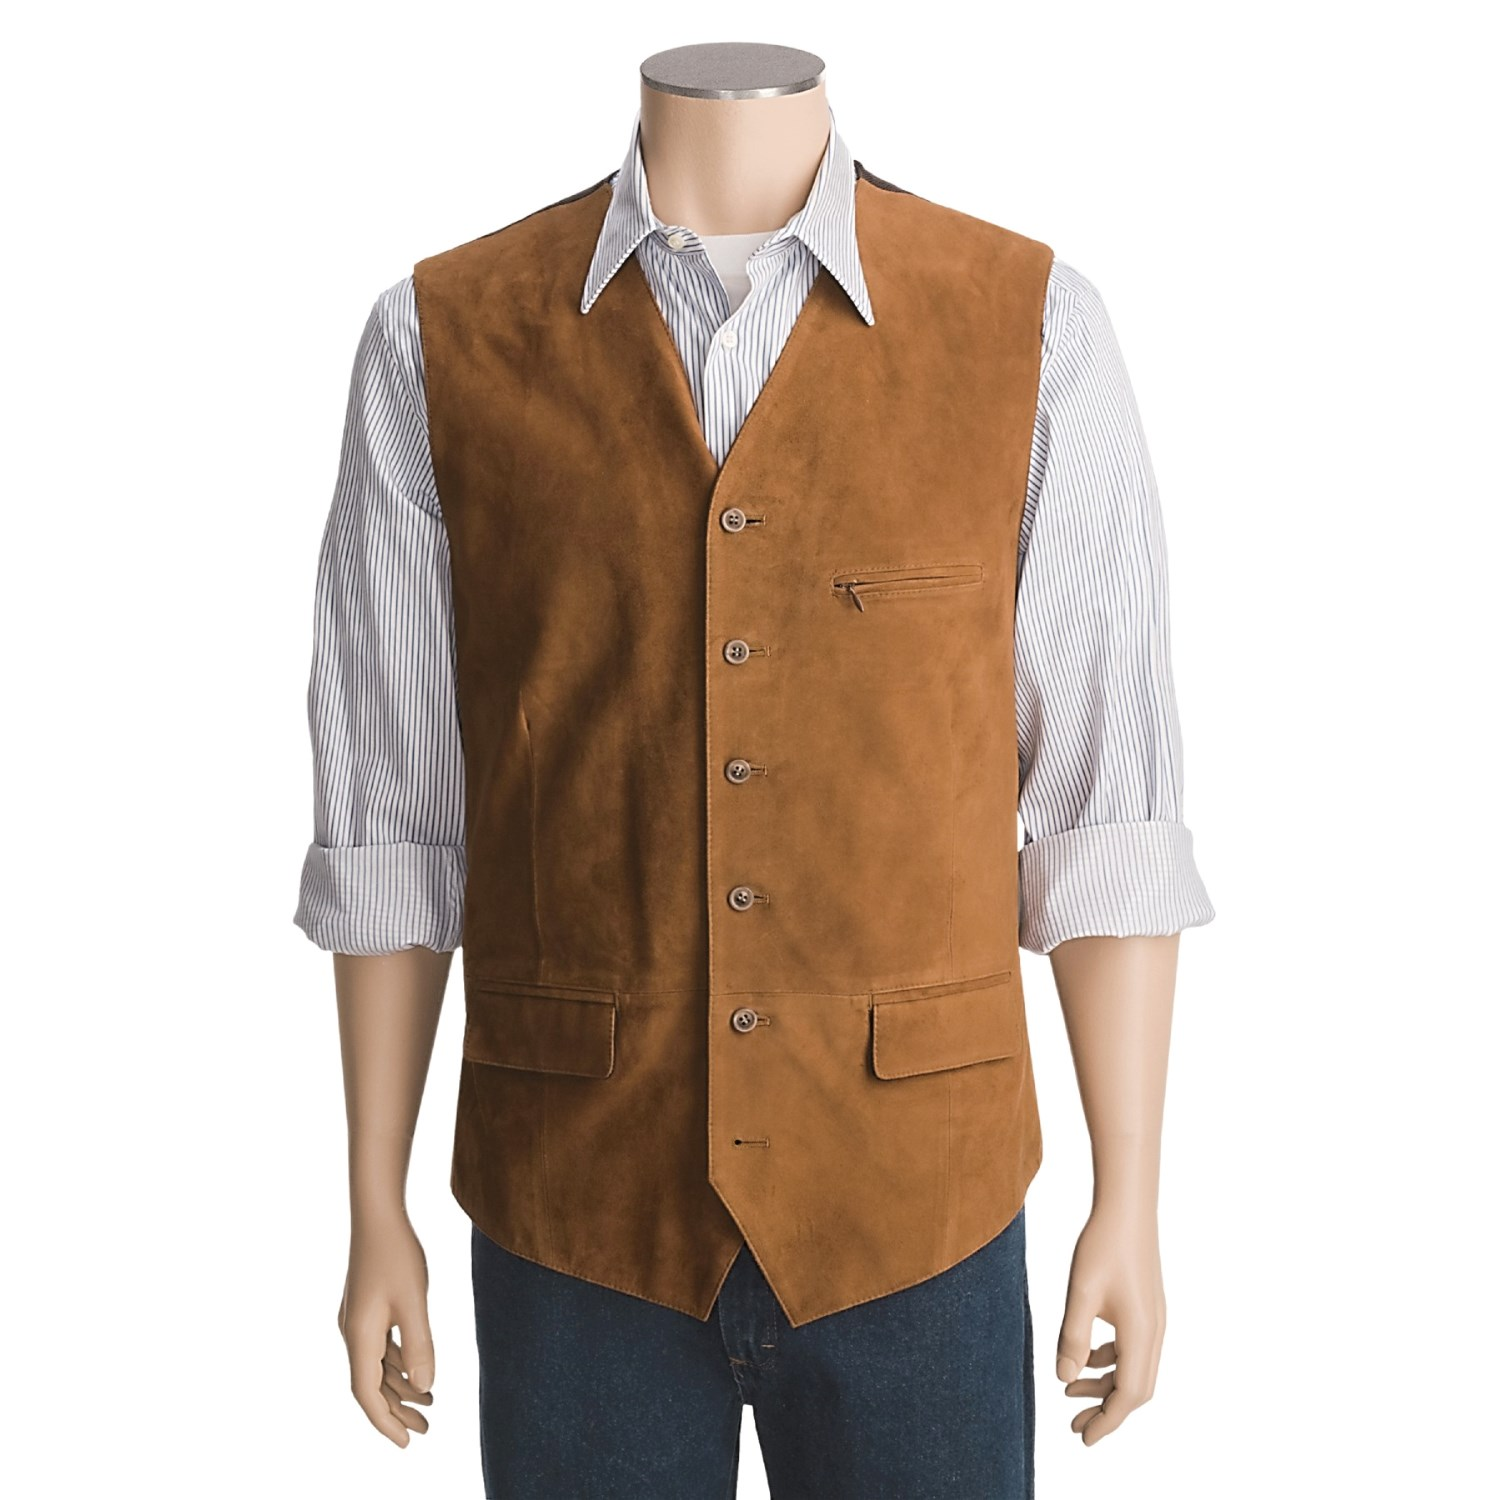 New Listing Mens Vintage Western Frontier Suede Leather Vest XL Cowboy Rodeo Rockabilly Mens Vintage Western Frontier Suede Leather Vest XL Cowboy Rodeo Rockabilly. Condition is Pre-owned.